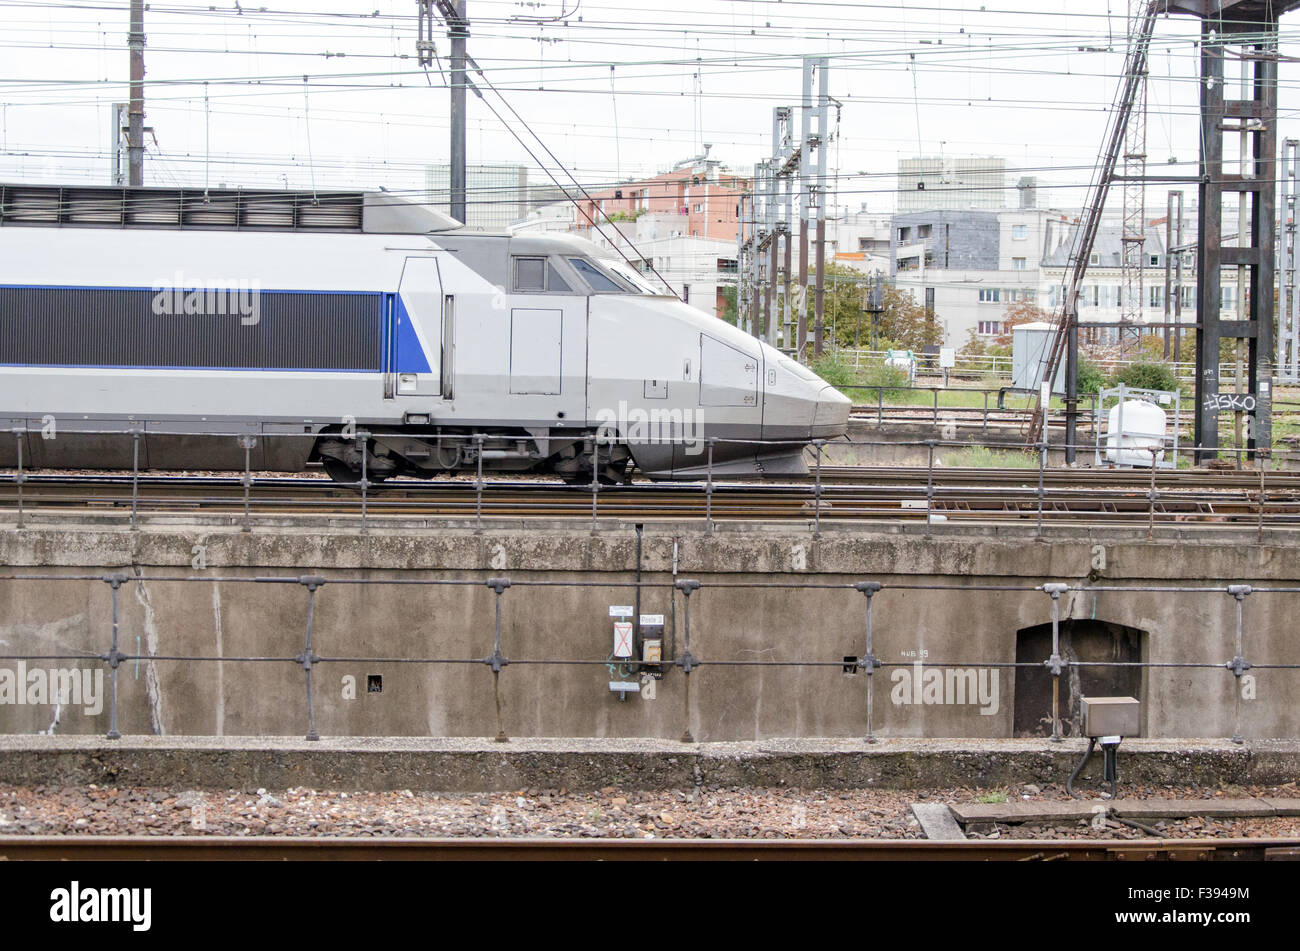 Blue and grey high-speed train on an urban background railway station - Stock Image